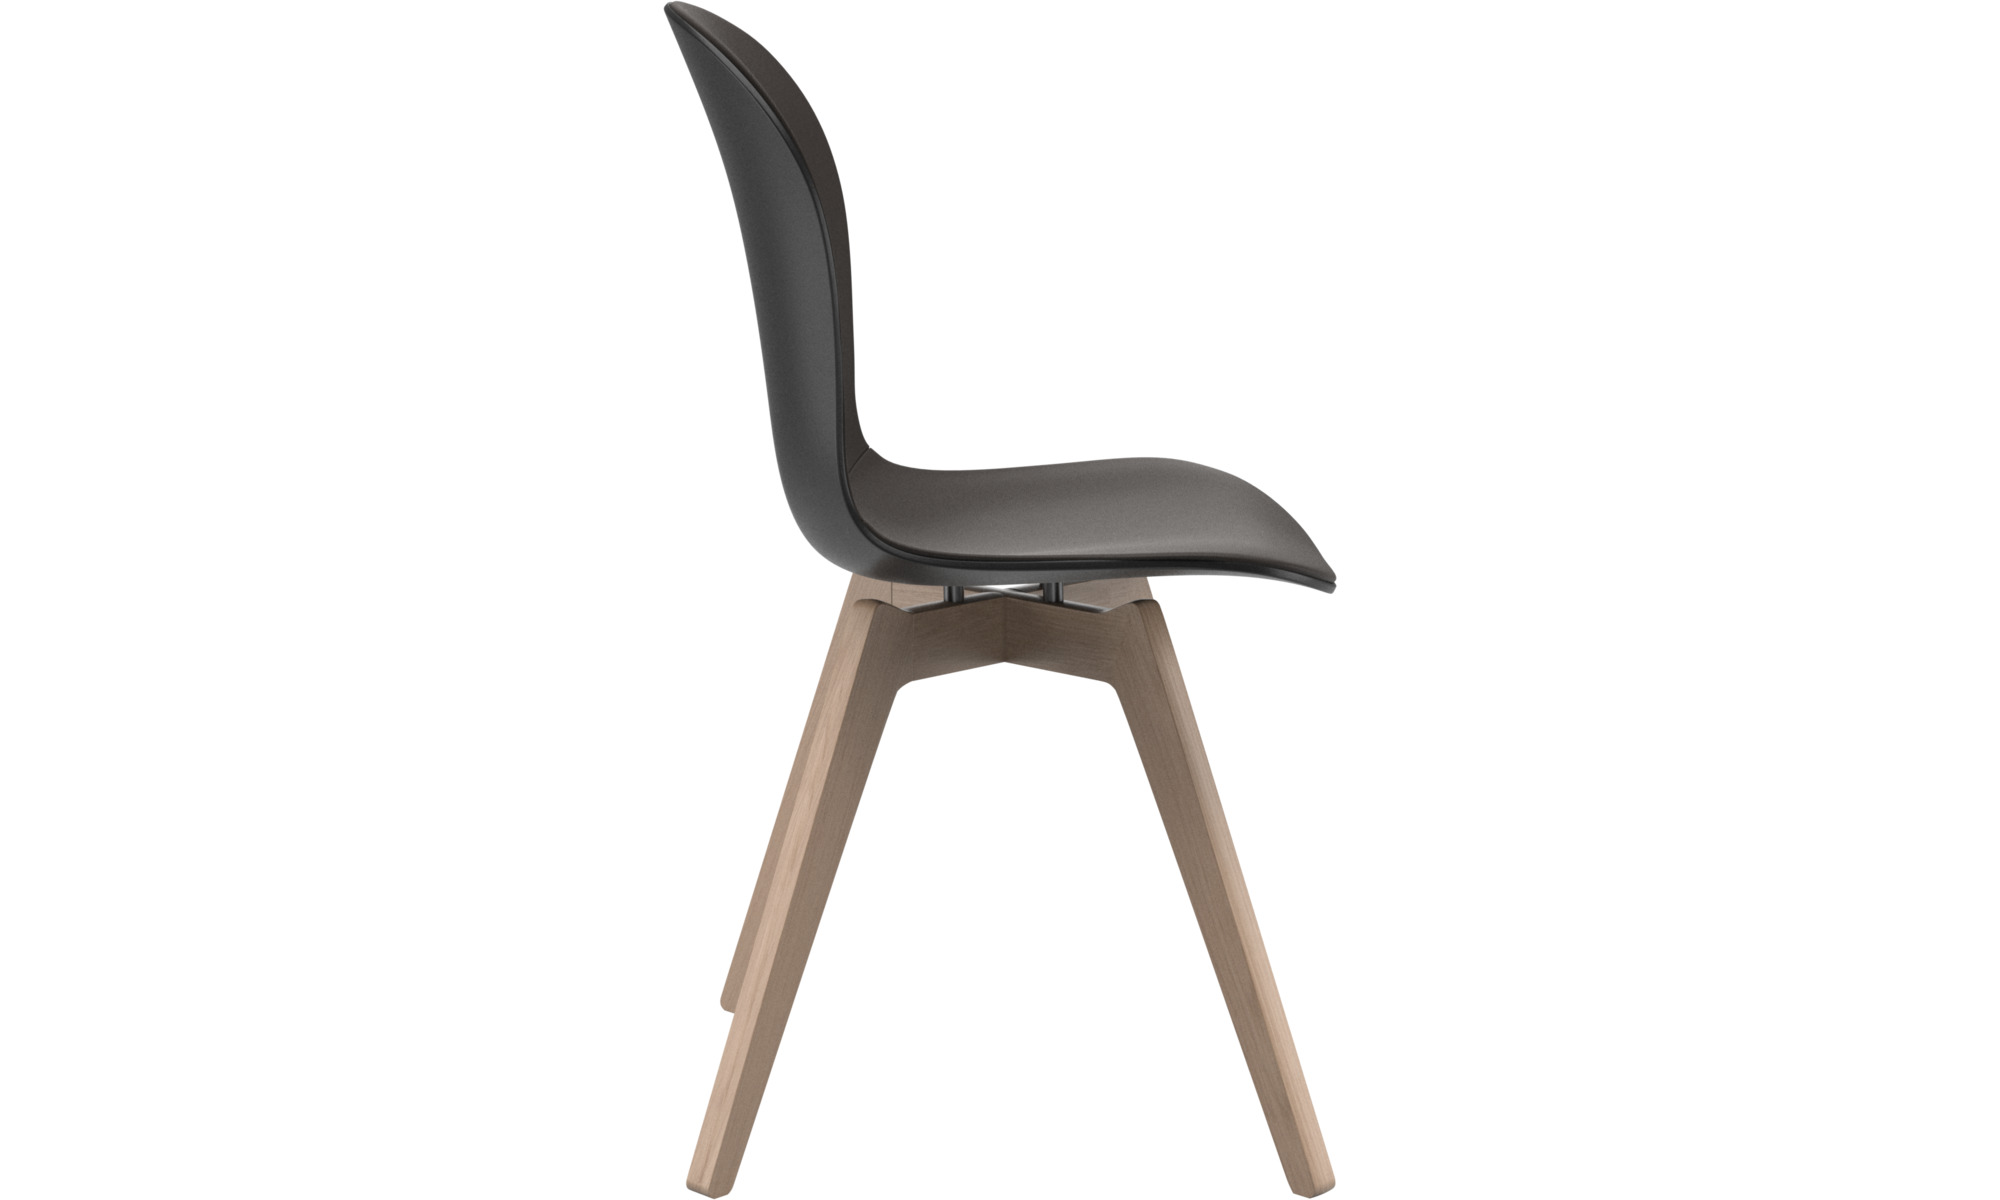 Enjoyable Dining Chairs Adelaide Chair Boconcept Caraccident5 Cool Chair Designs And Ideas Caraccident5Info